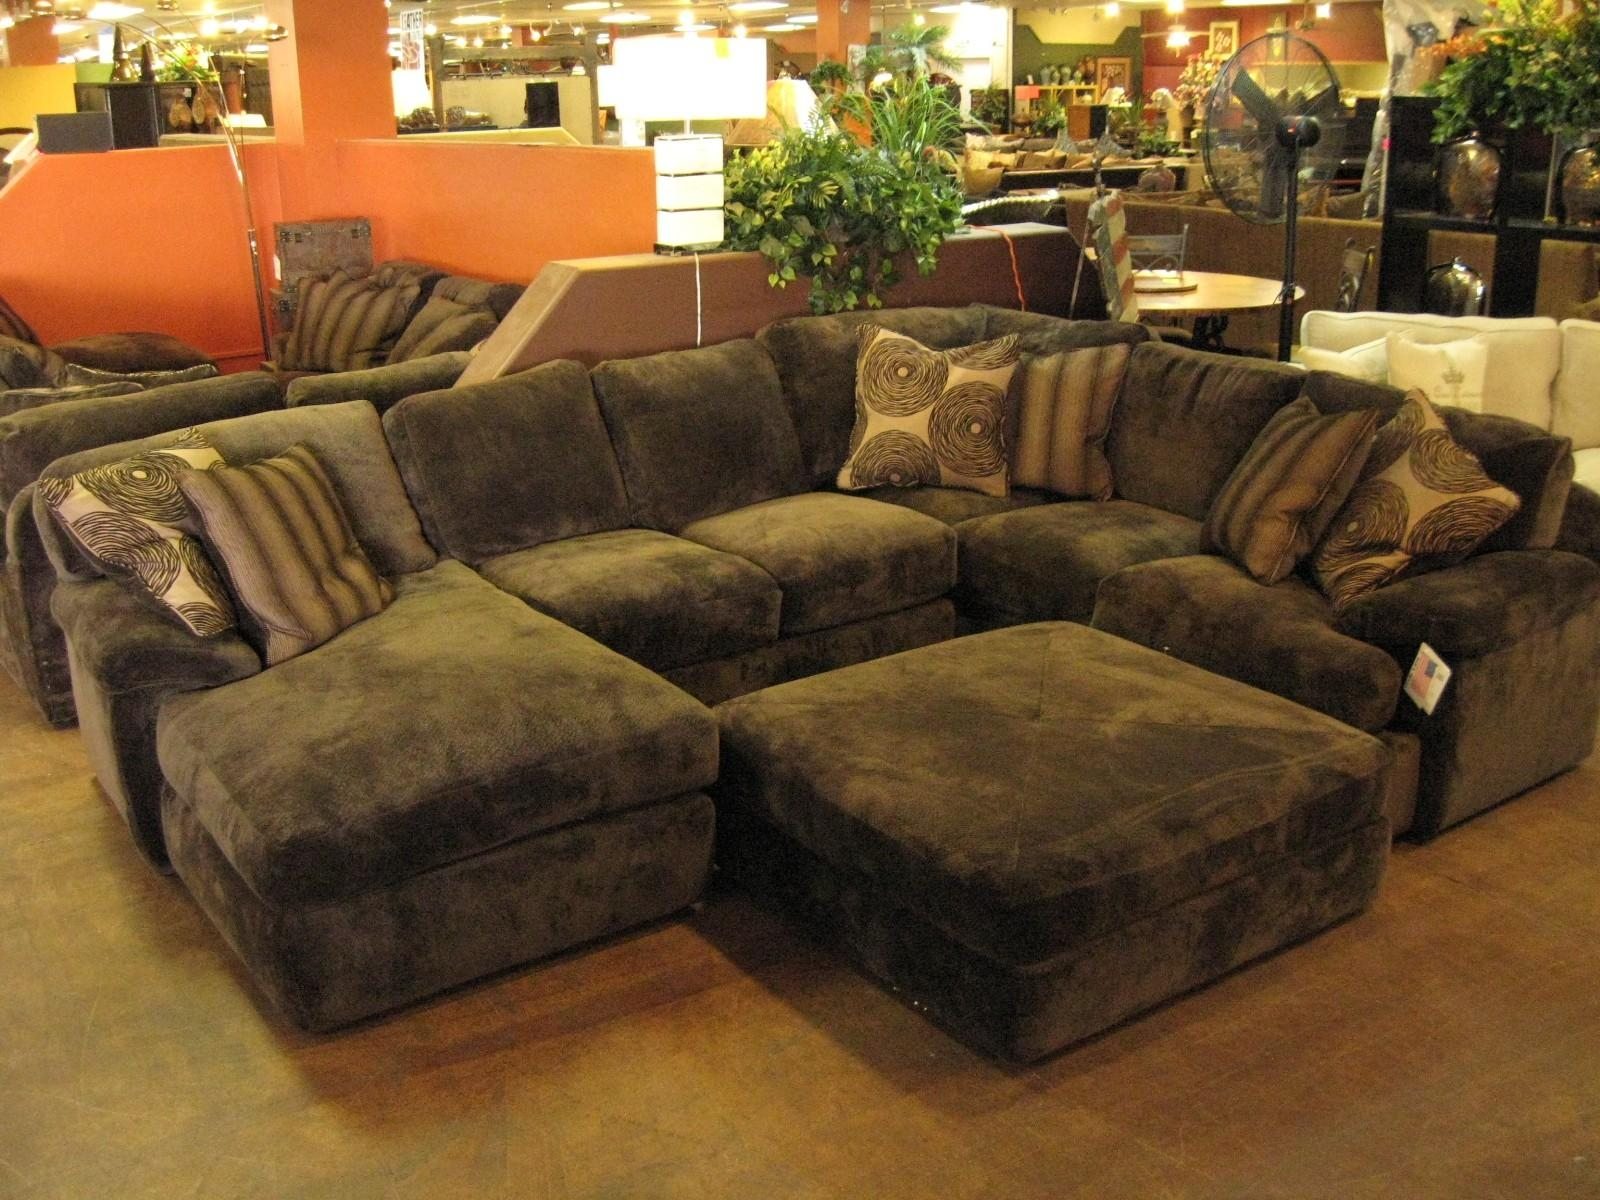 Featured Image of Sectional With Oversized Ottoman